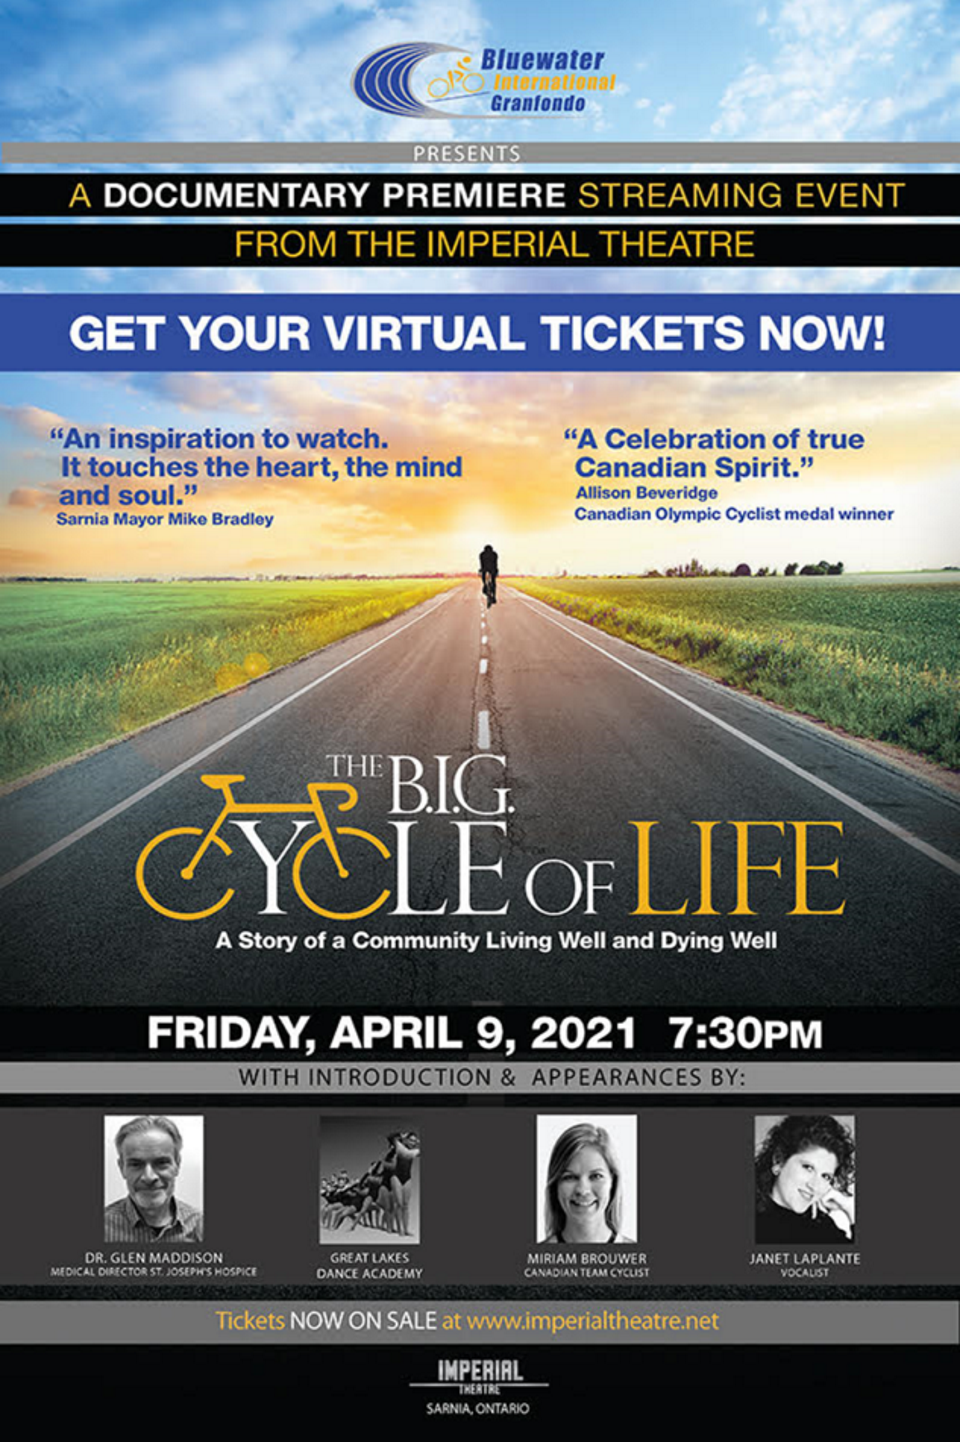 Documentary Premiere: The B.I.G. Cycle of Life, A Story of a Community Living Well and Dying Well